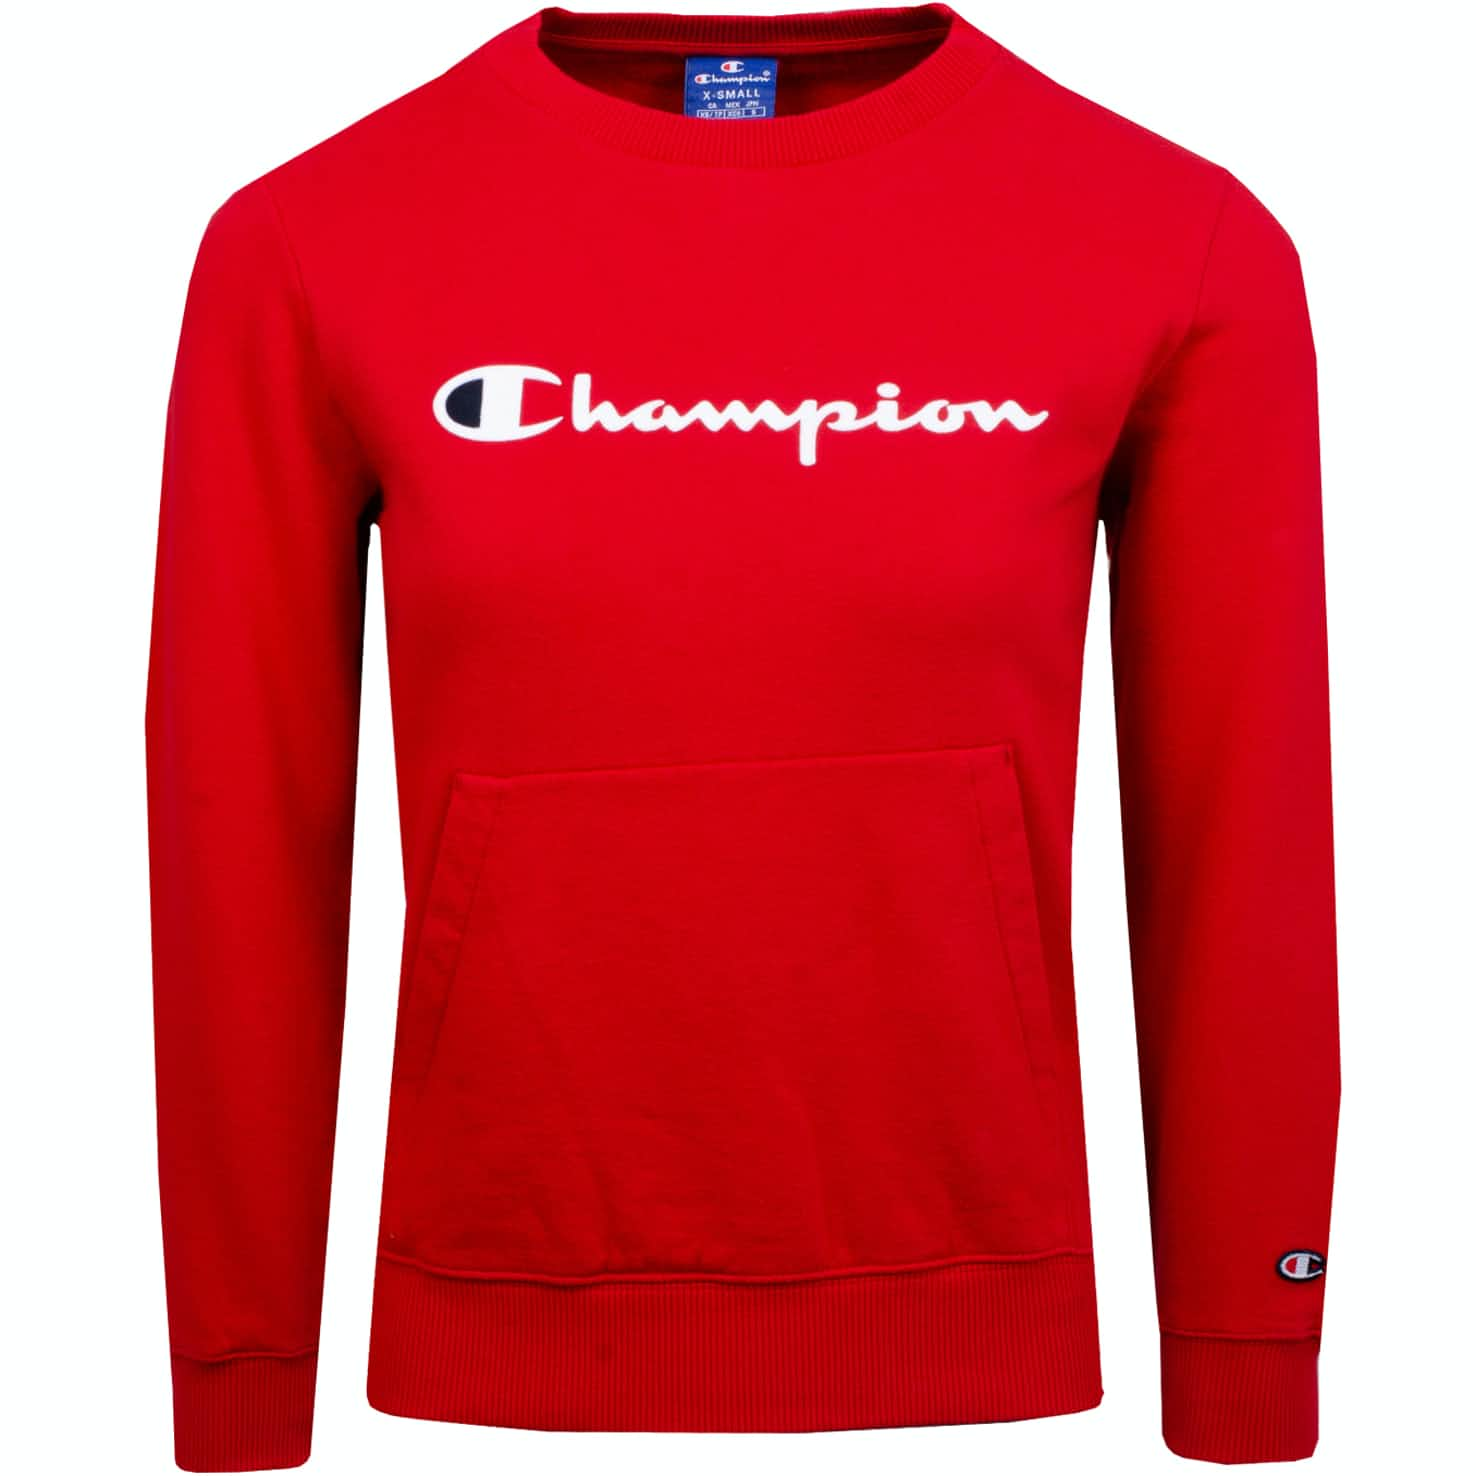 Womens Logo Crew Neck Sweatshirt Red